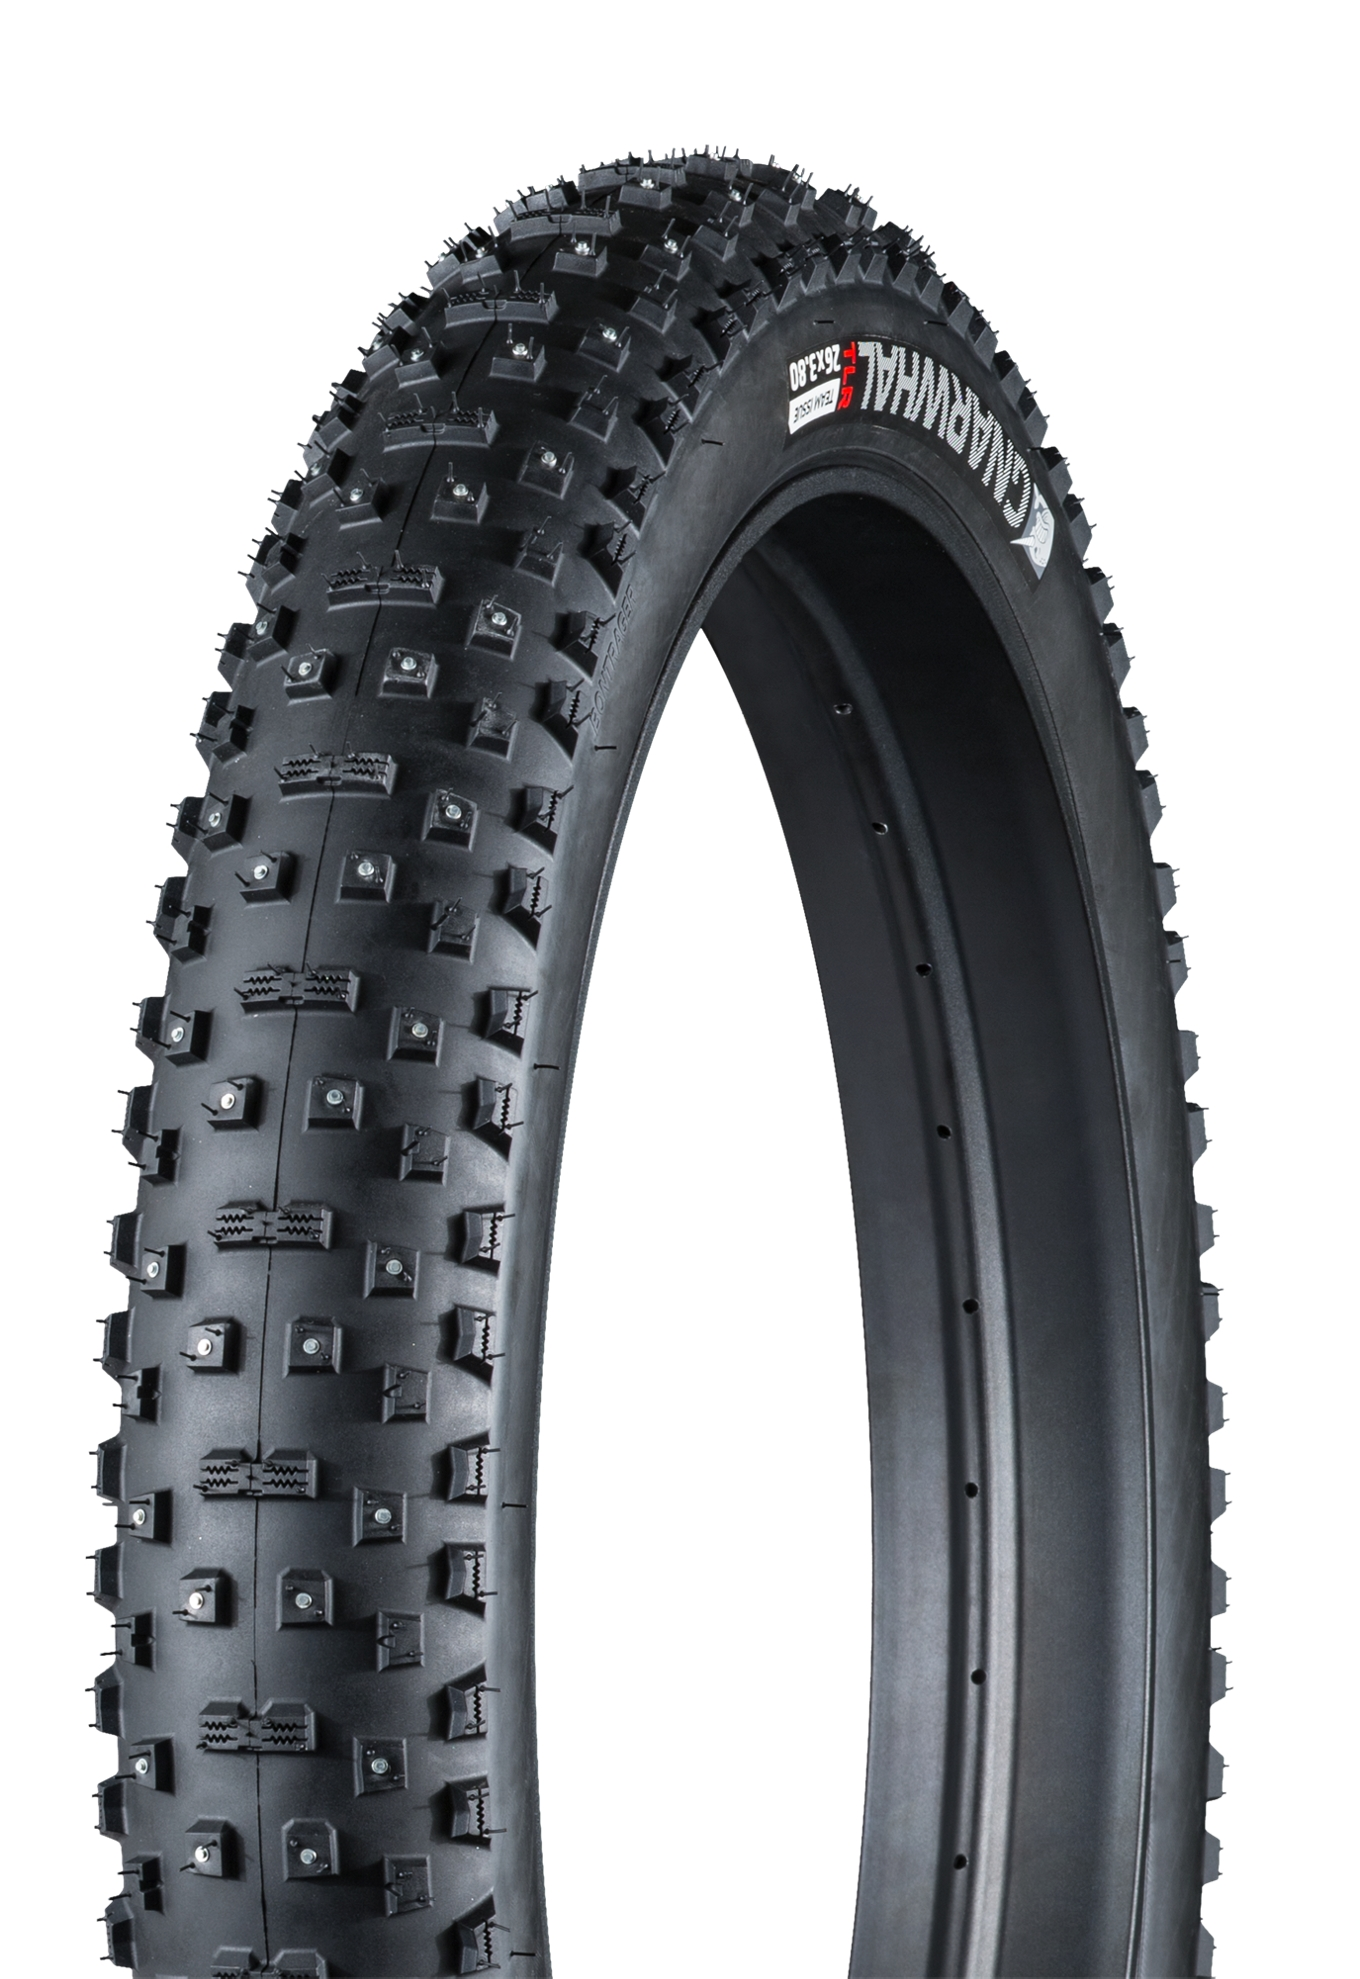 Puncture Resistant 29er Mountain Bike Tires - Life Style ...